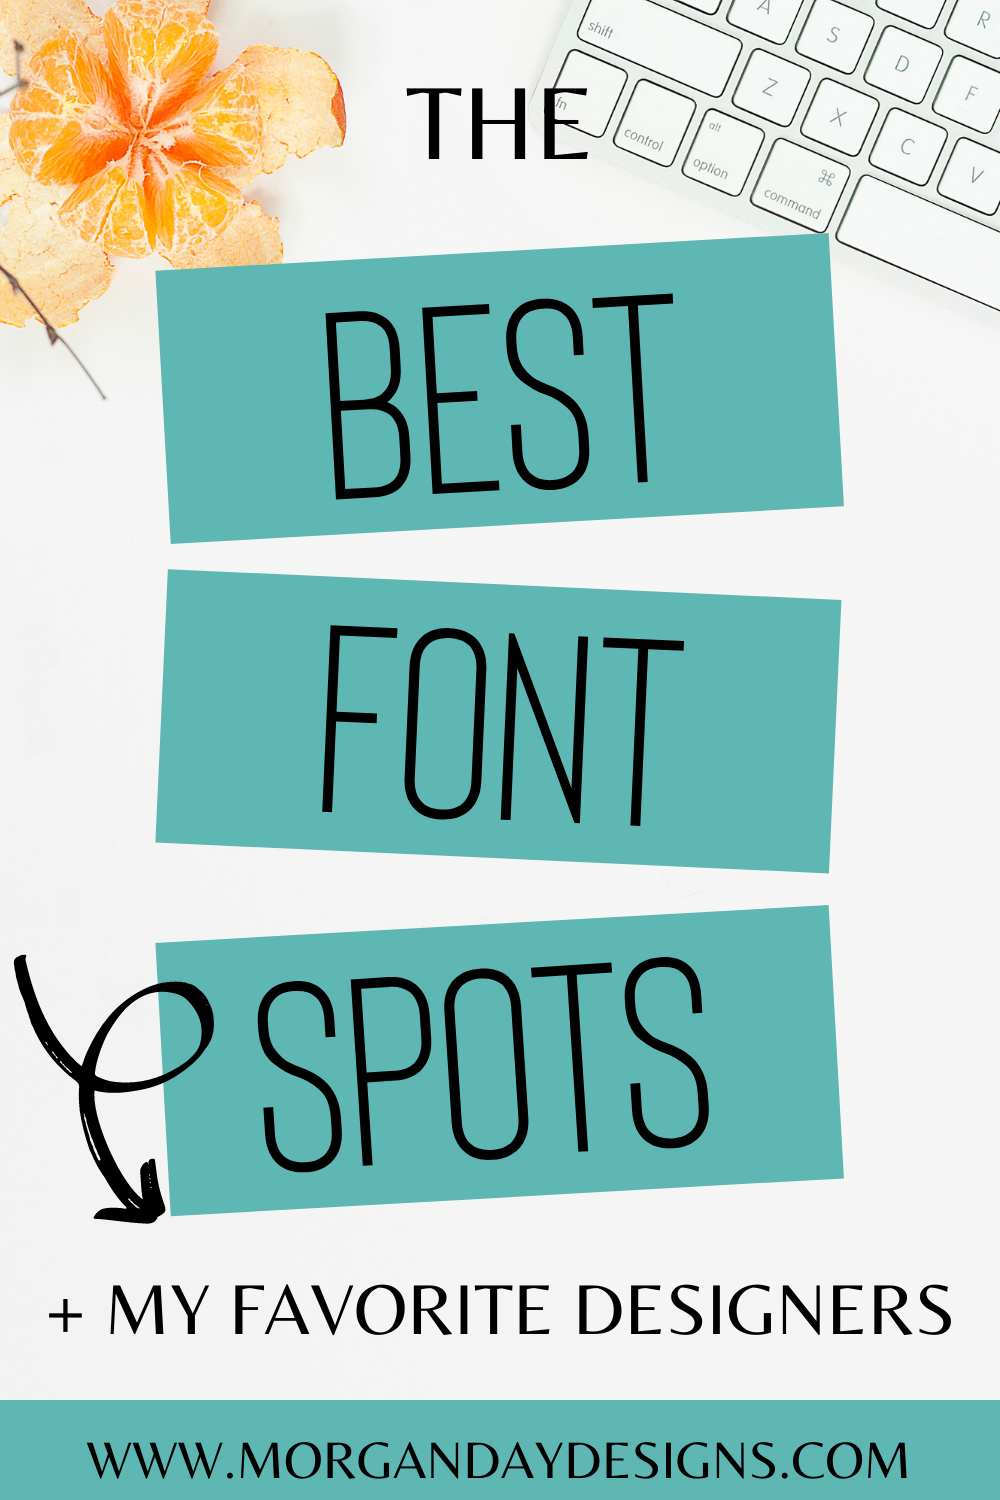 The Best Fonts